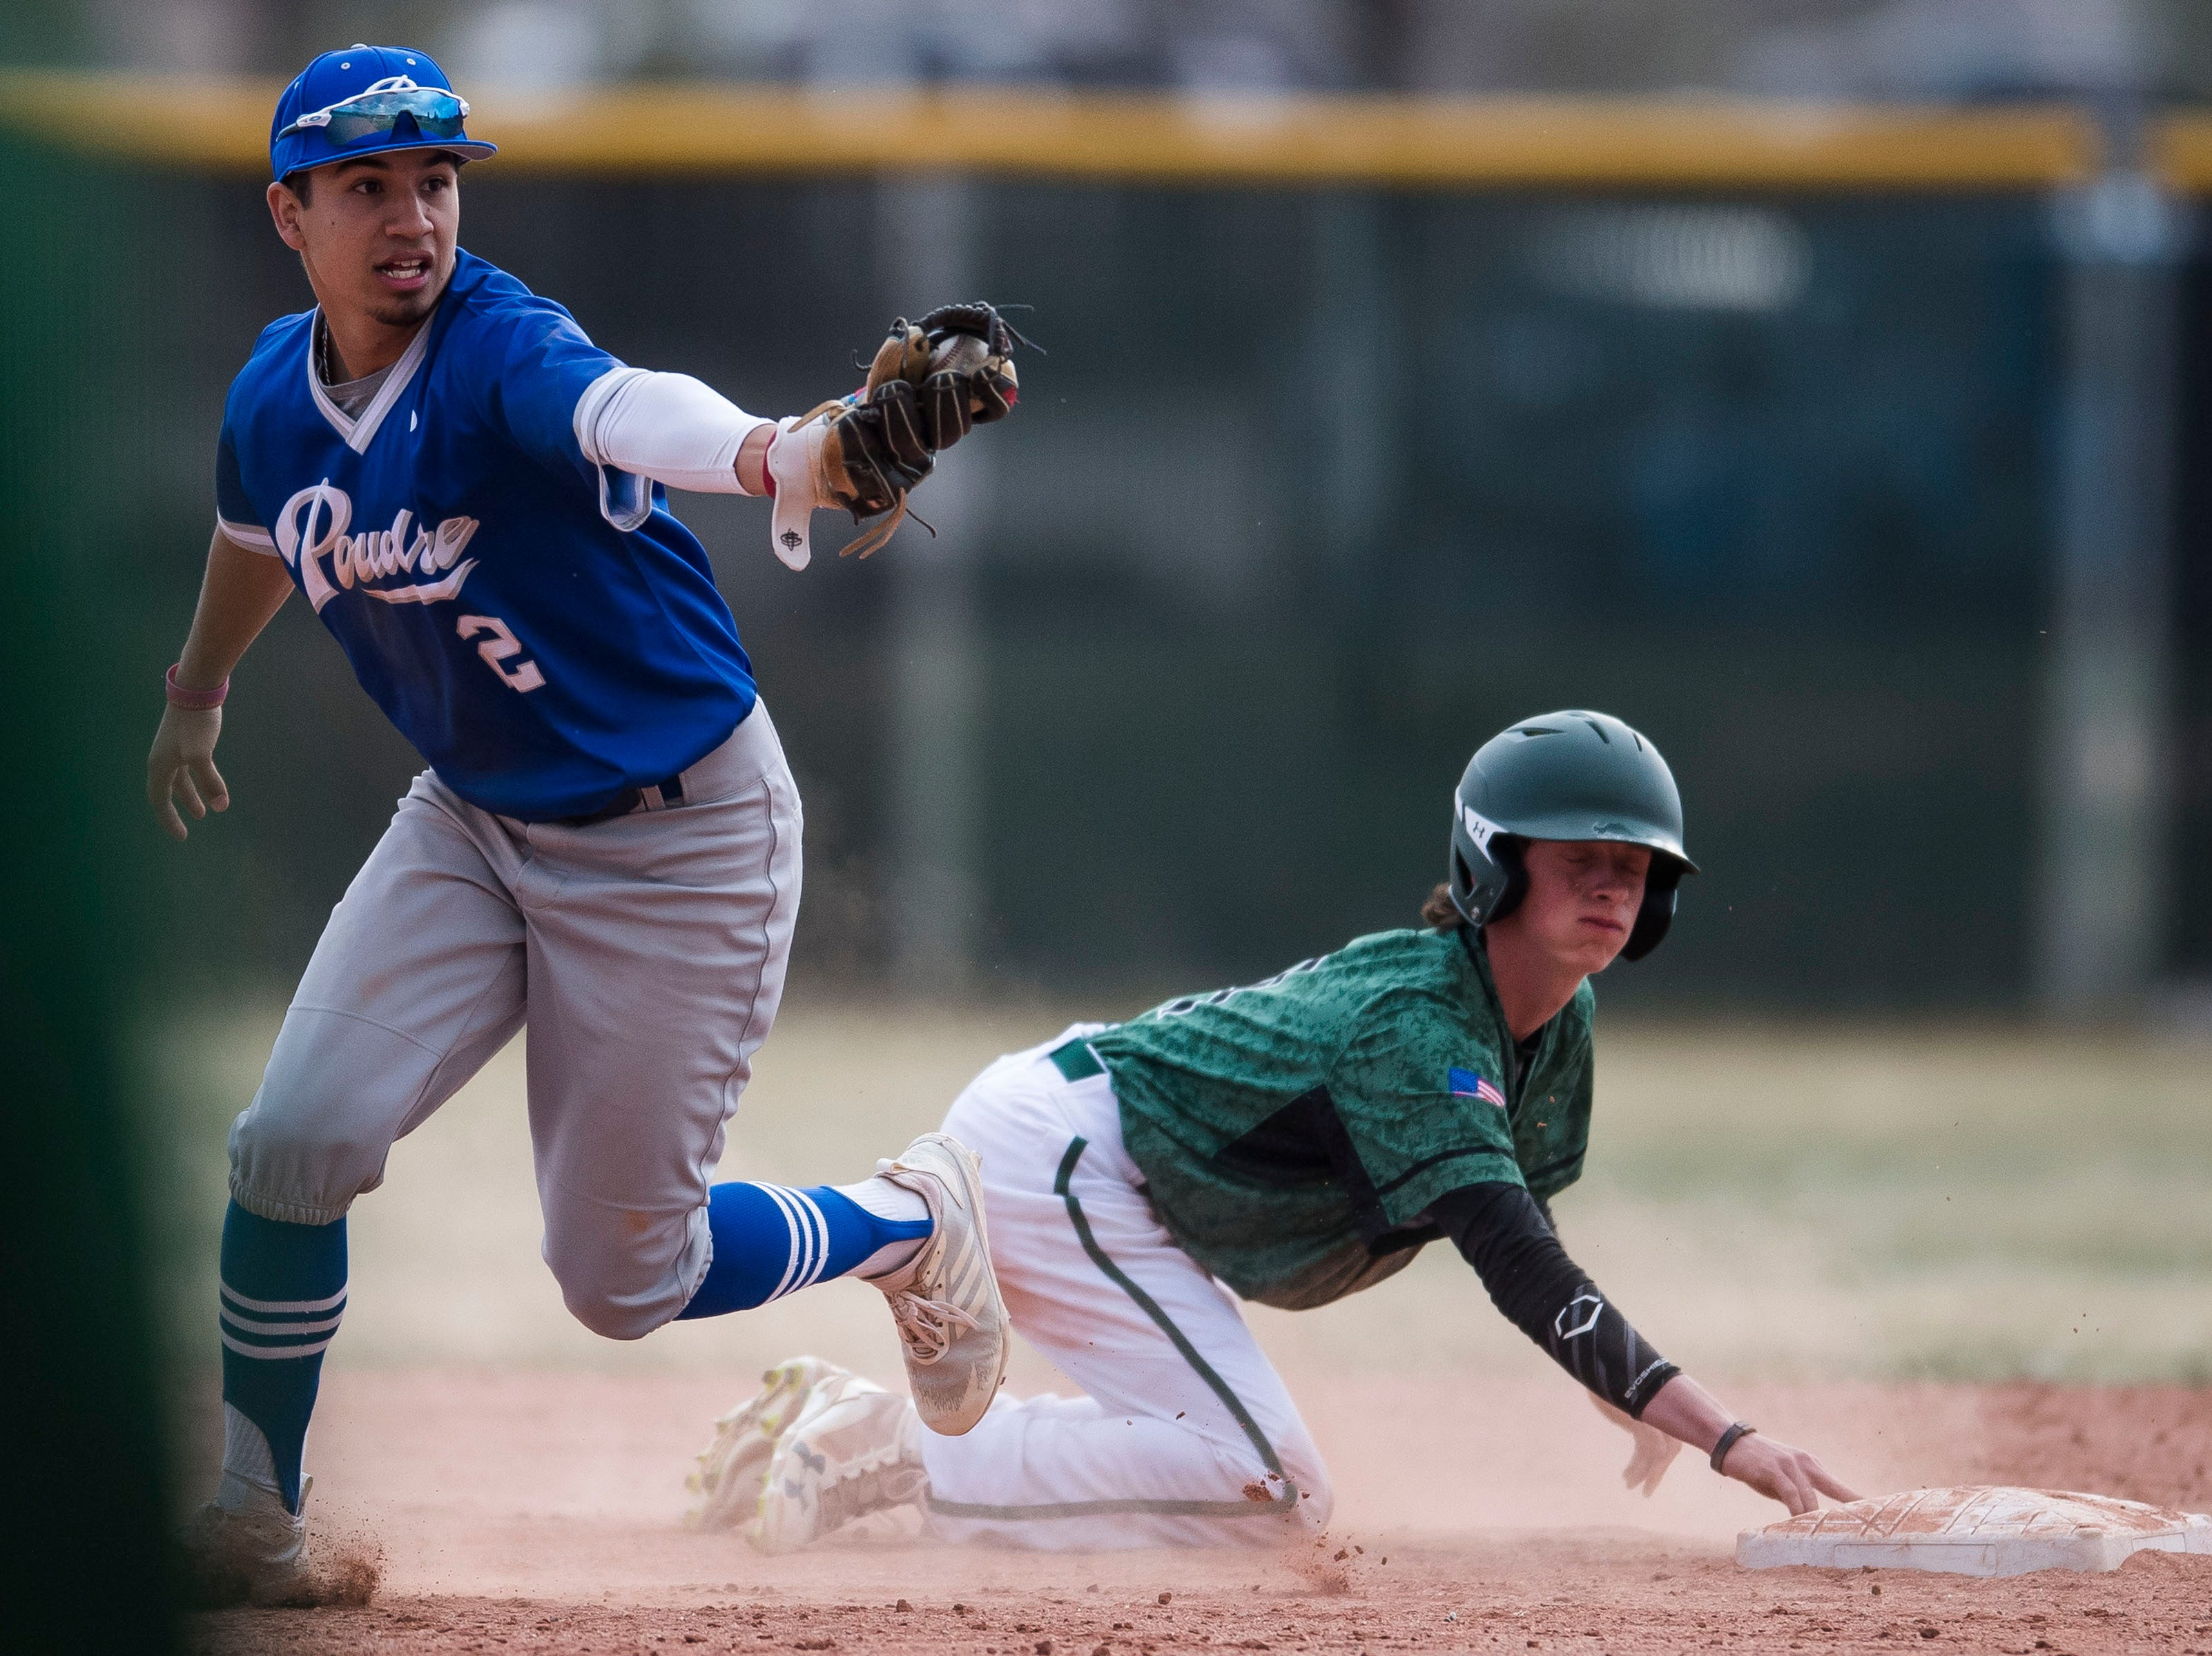 Poudre High School shortstop Sergio Tarango reacts after tagging out (2) Fossil Ridge High School runner Sam Cosper (4) at second base on Wednesday, April 3, 2019, at Fossil Ridge High School in Fort Collins, Colo.